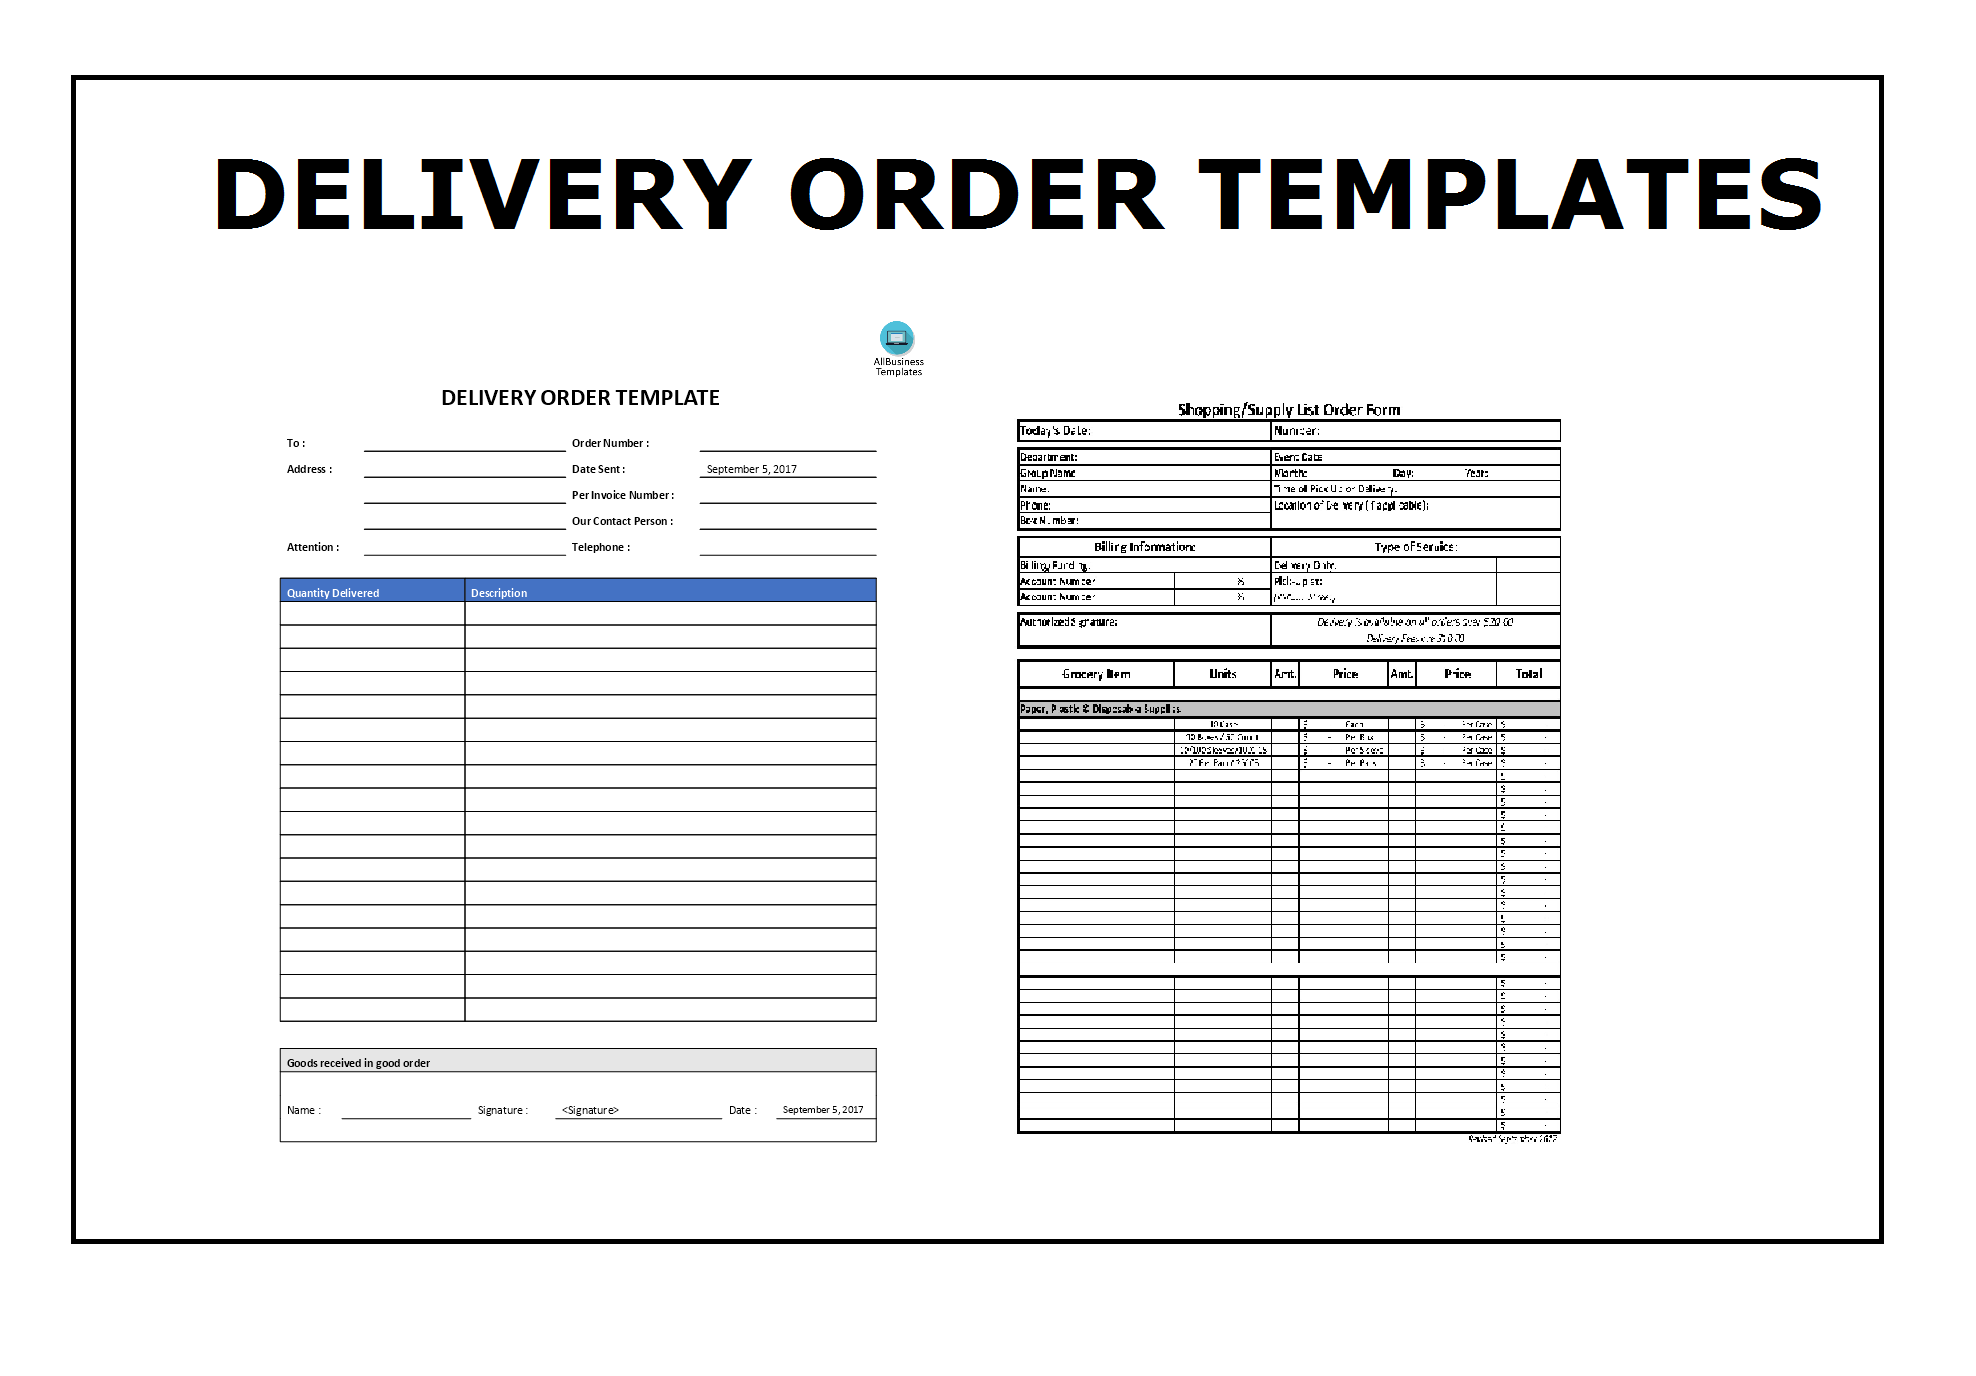 Delivery Order Template Topics about business forms contracts